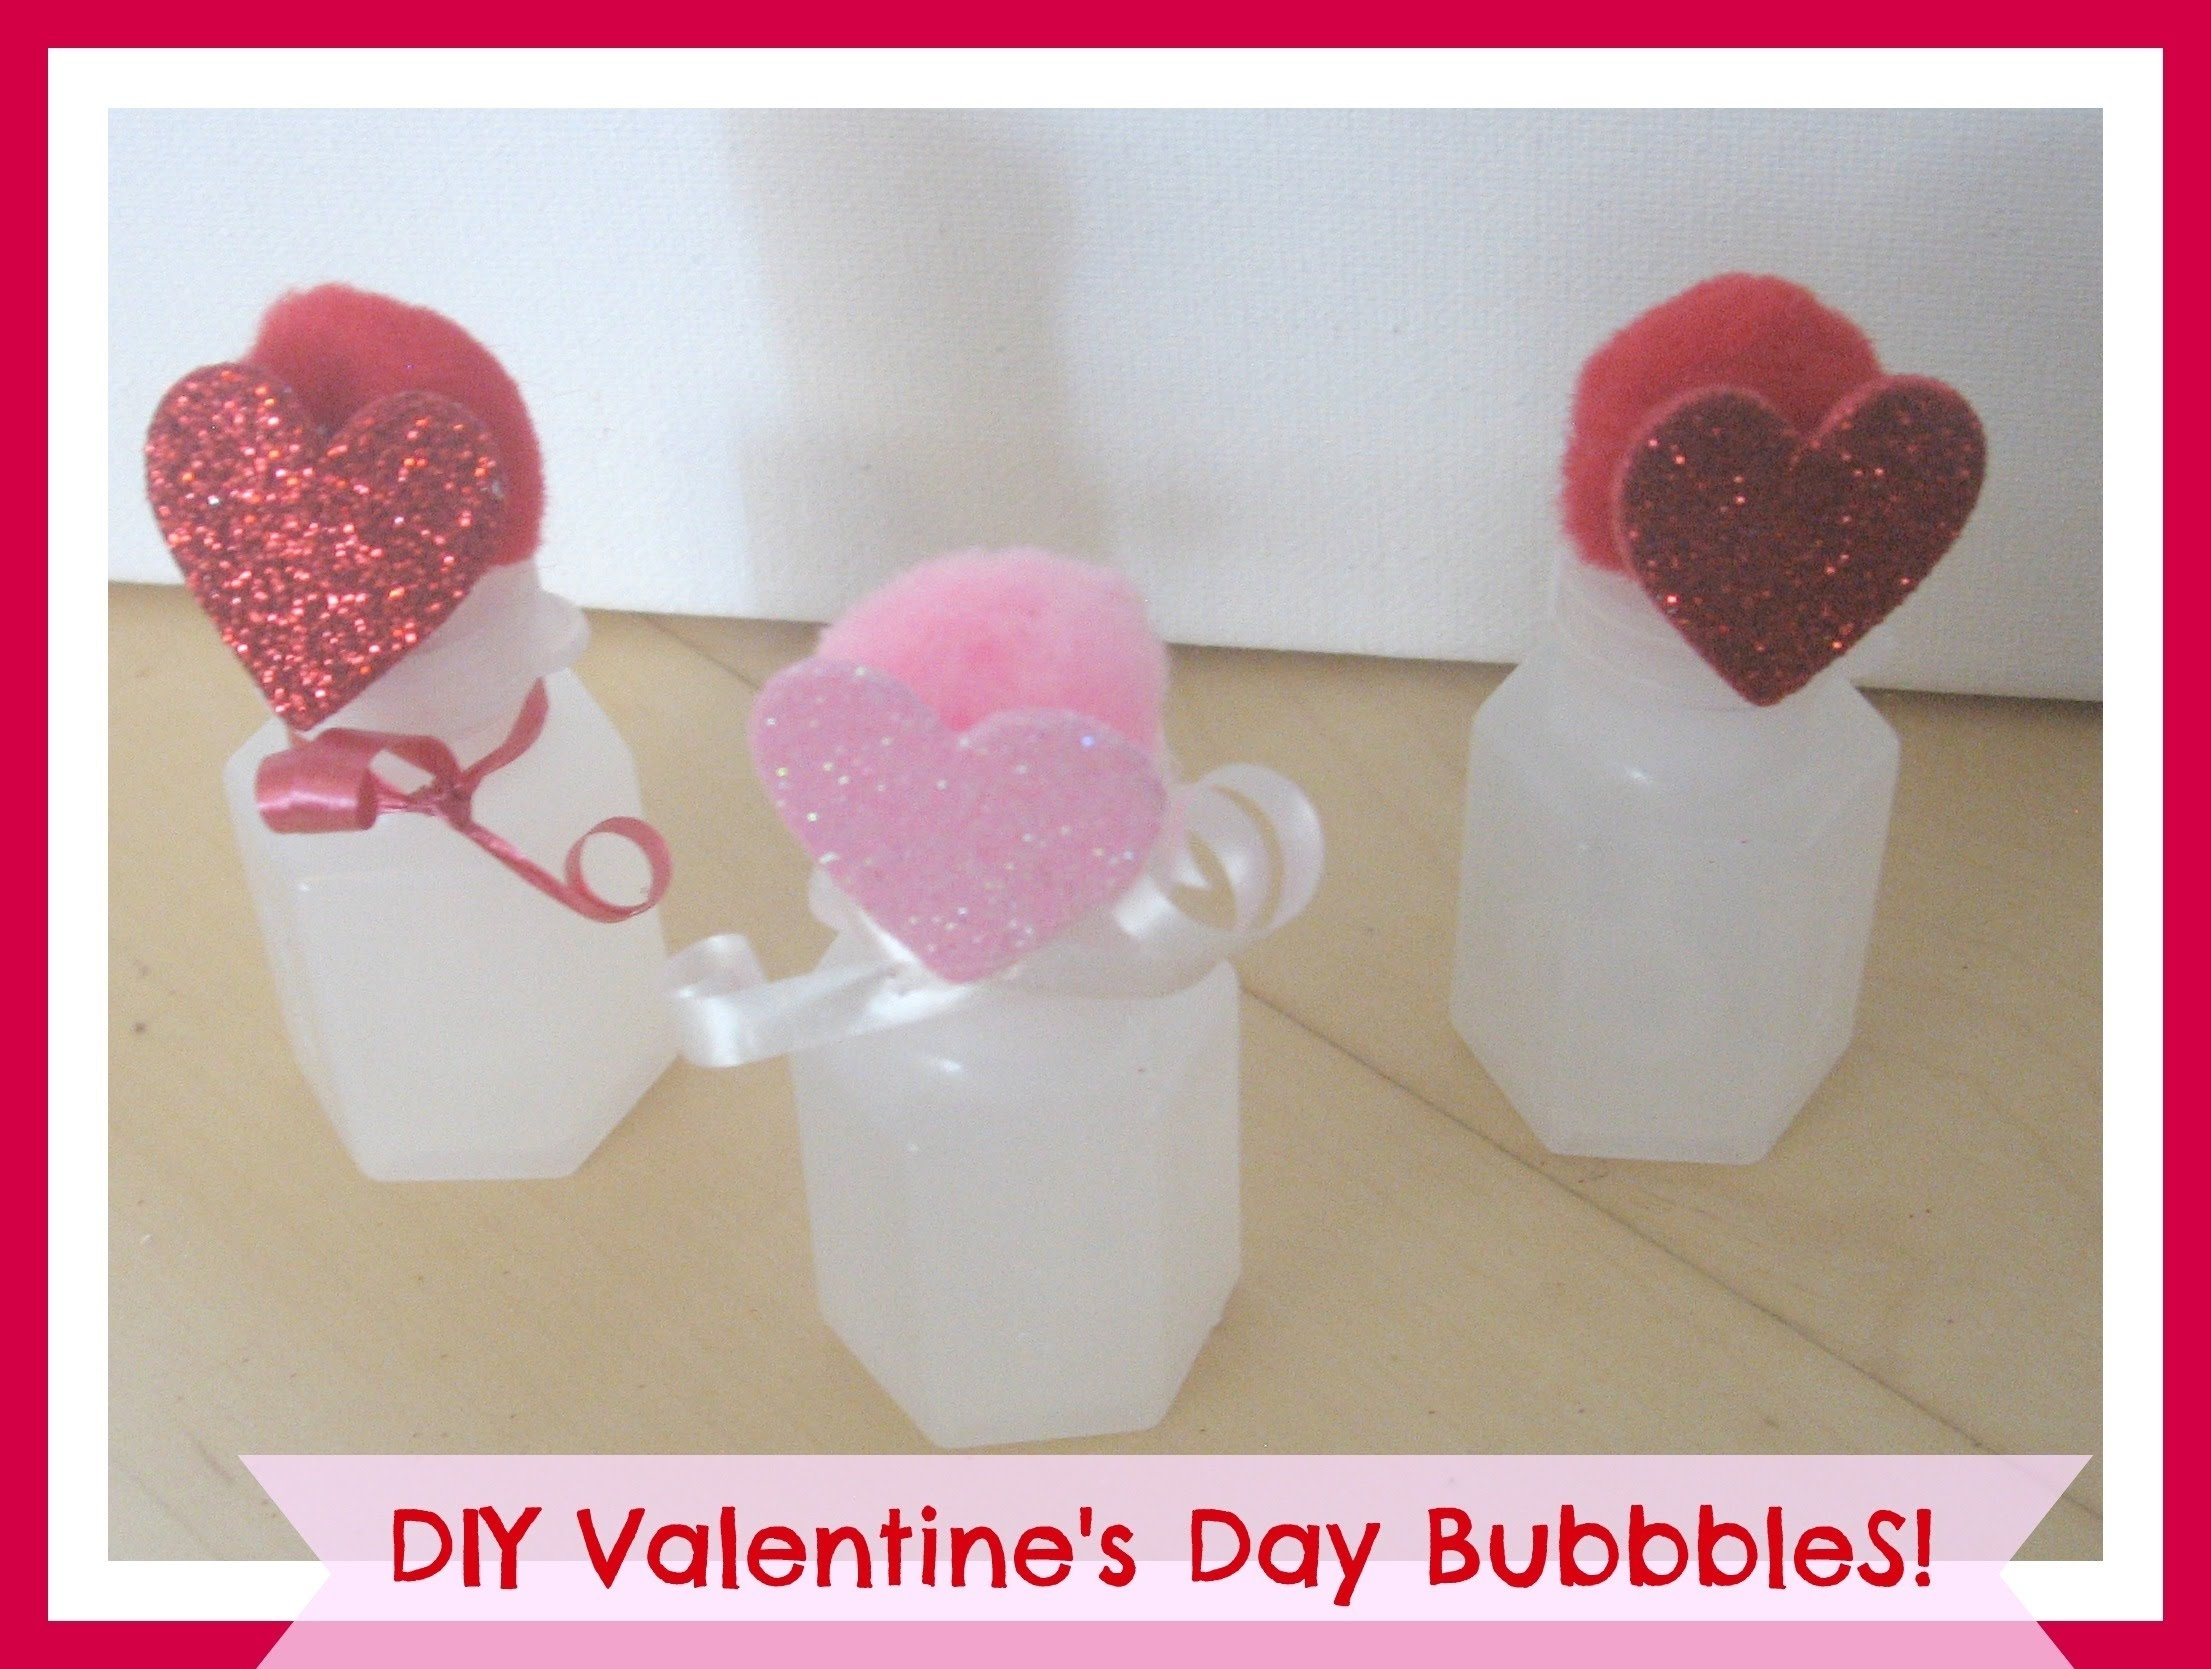 10 Unique Valentines Gift Ideas For Kids cheap diy kids valentine gift idea 15 cent bubbles valentines